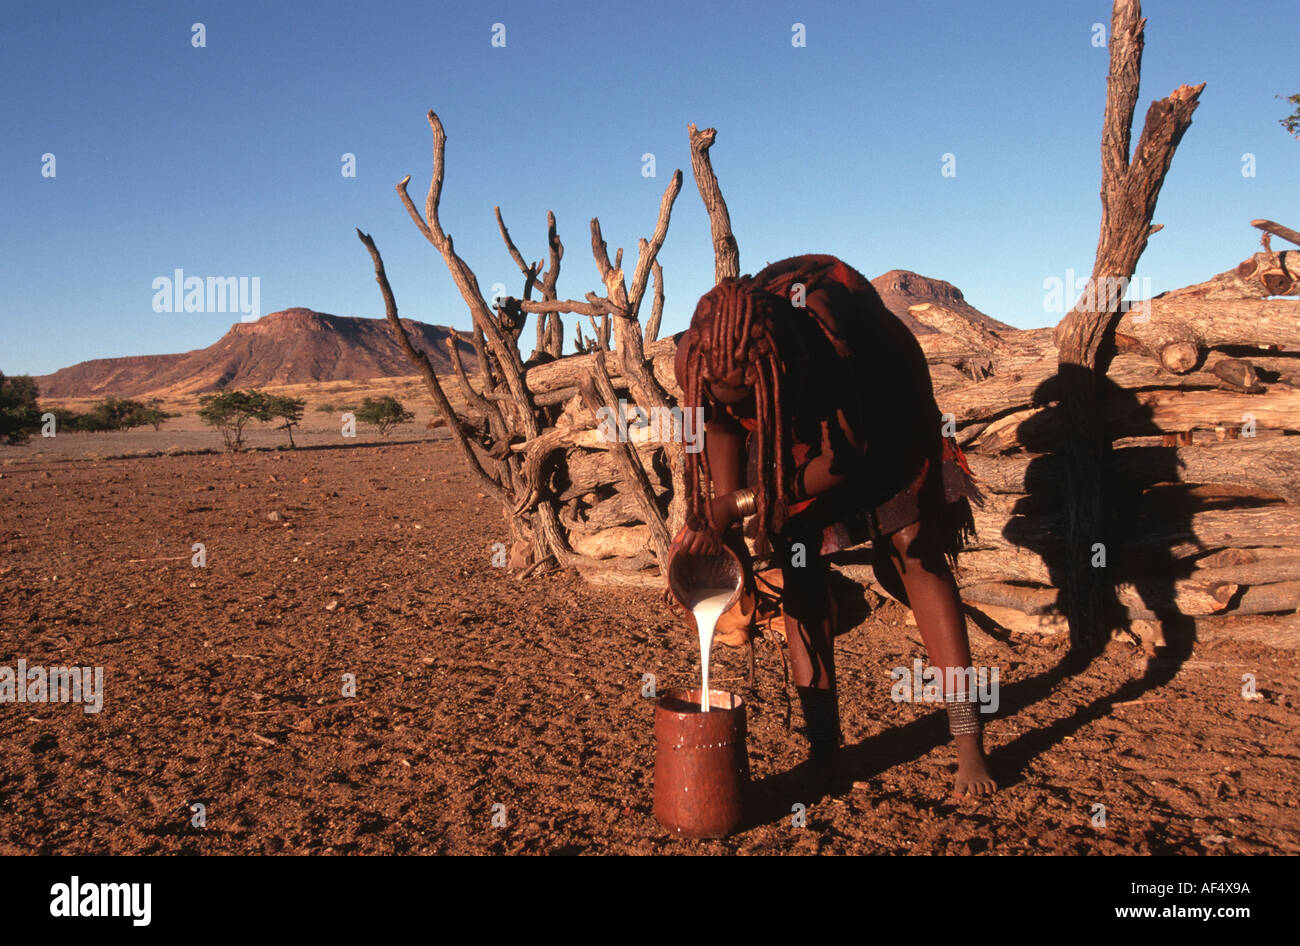 A Himba girl in a cattle Kraal Northern Namibia - Stock Image